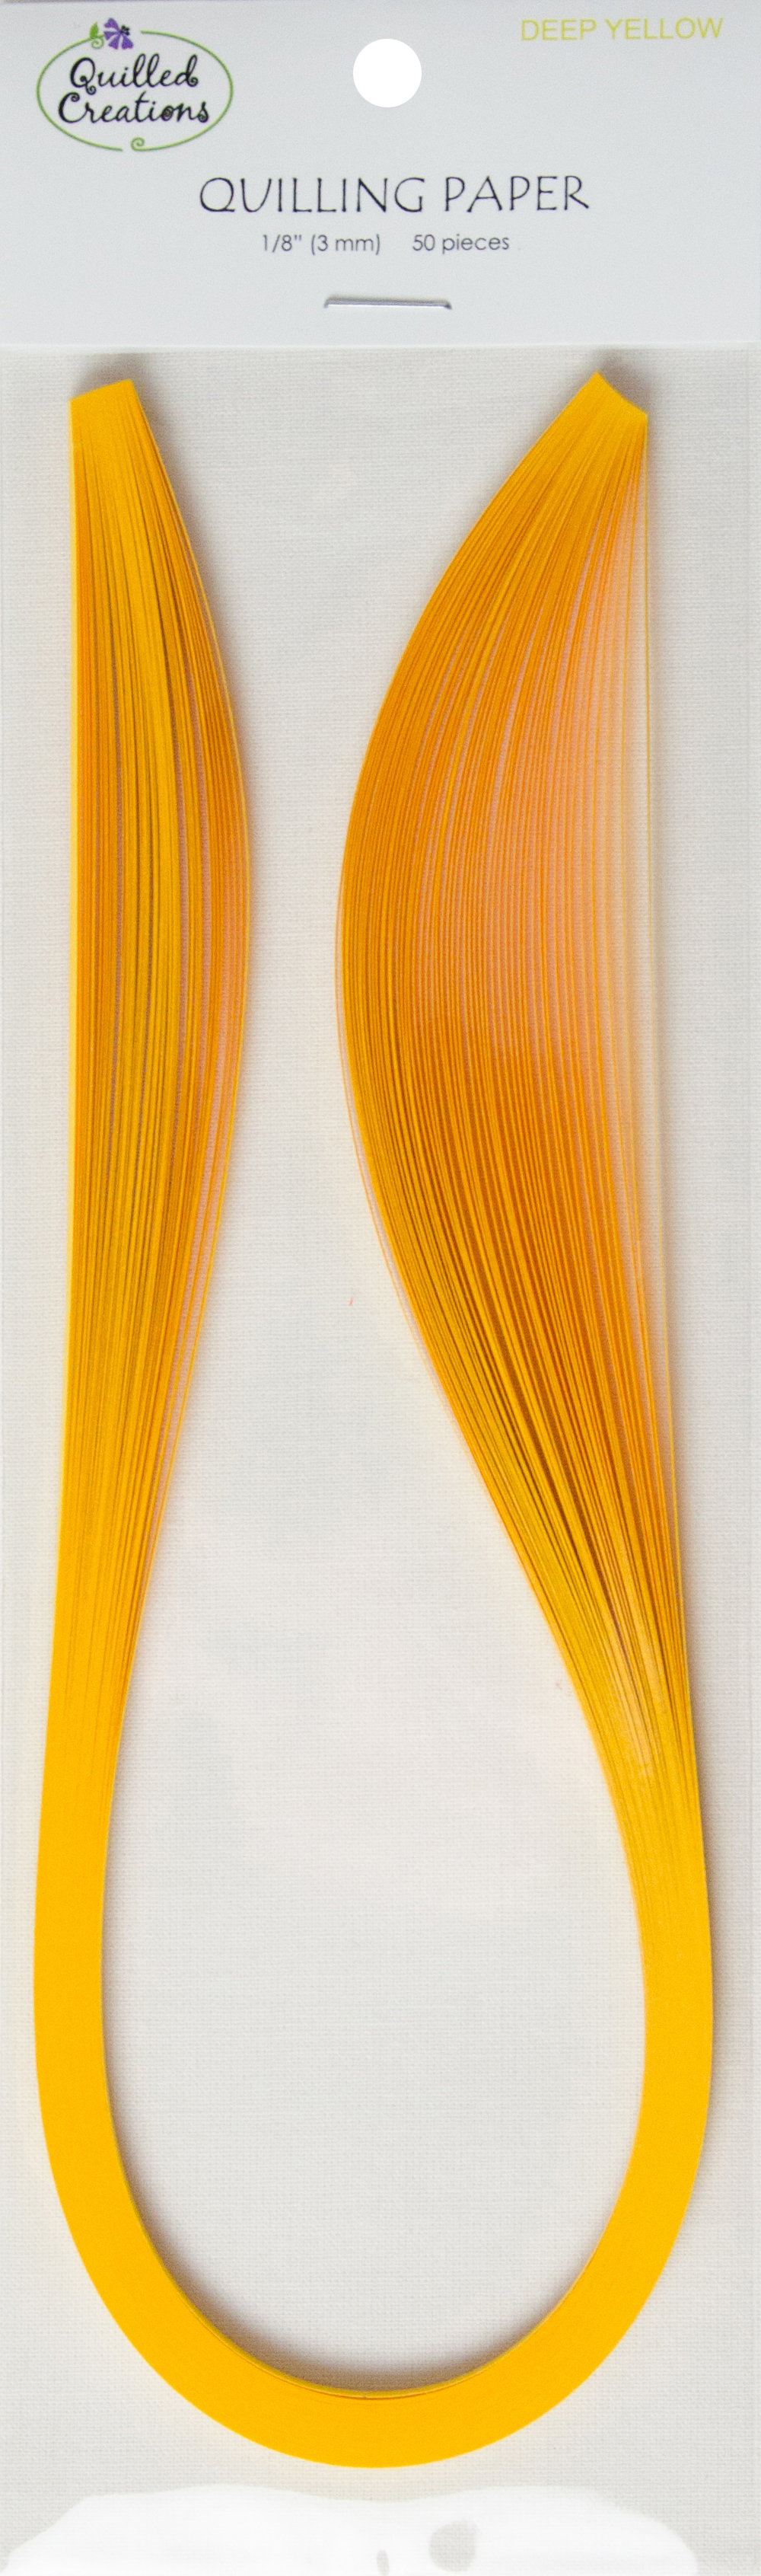 Quilling Paper 1/8 50pcs Deep Yellow